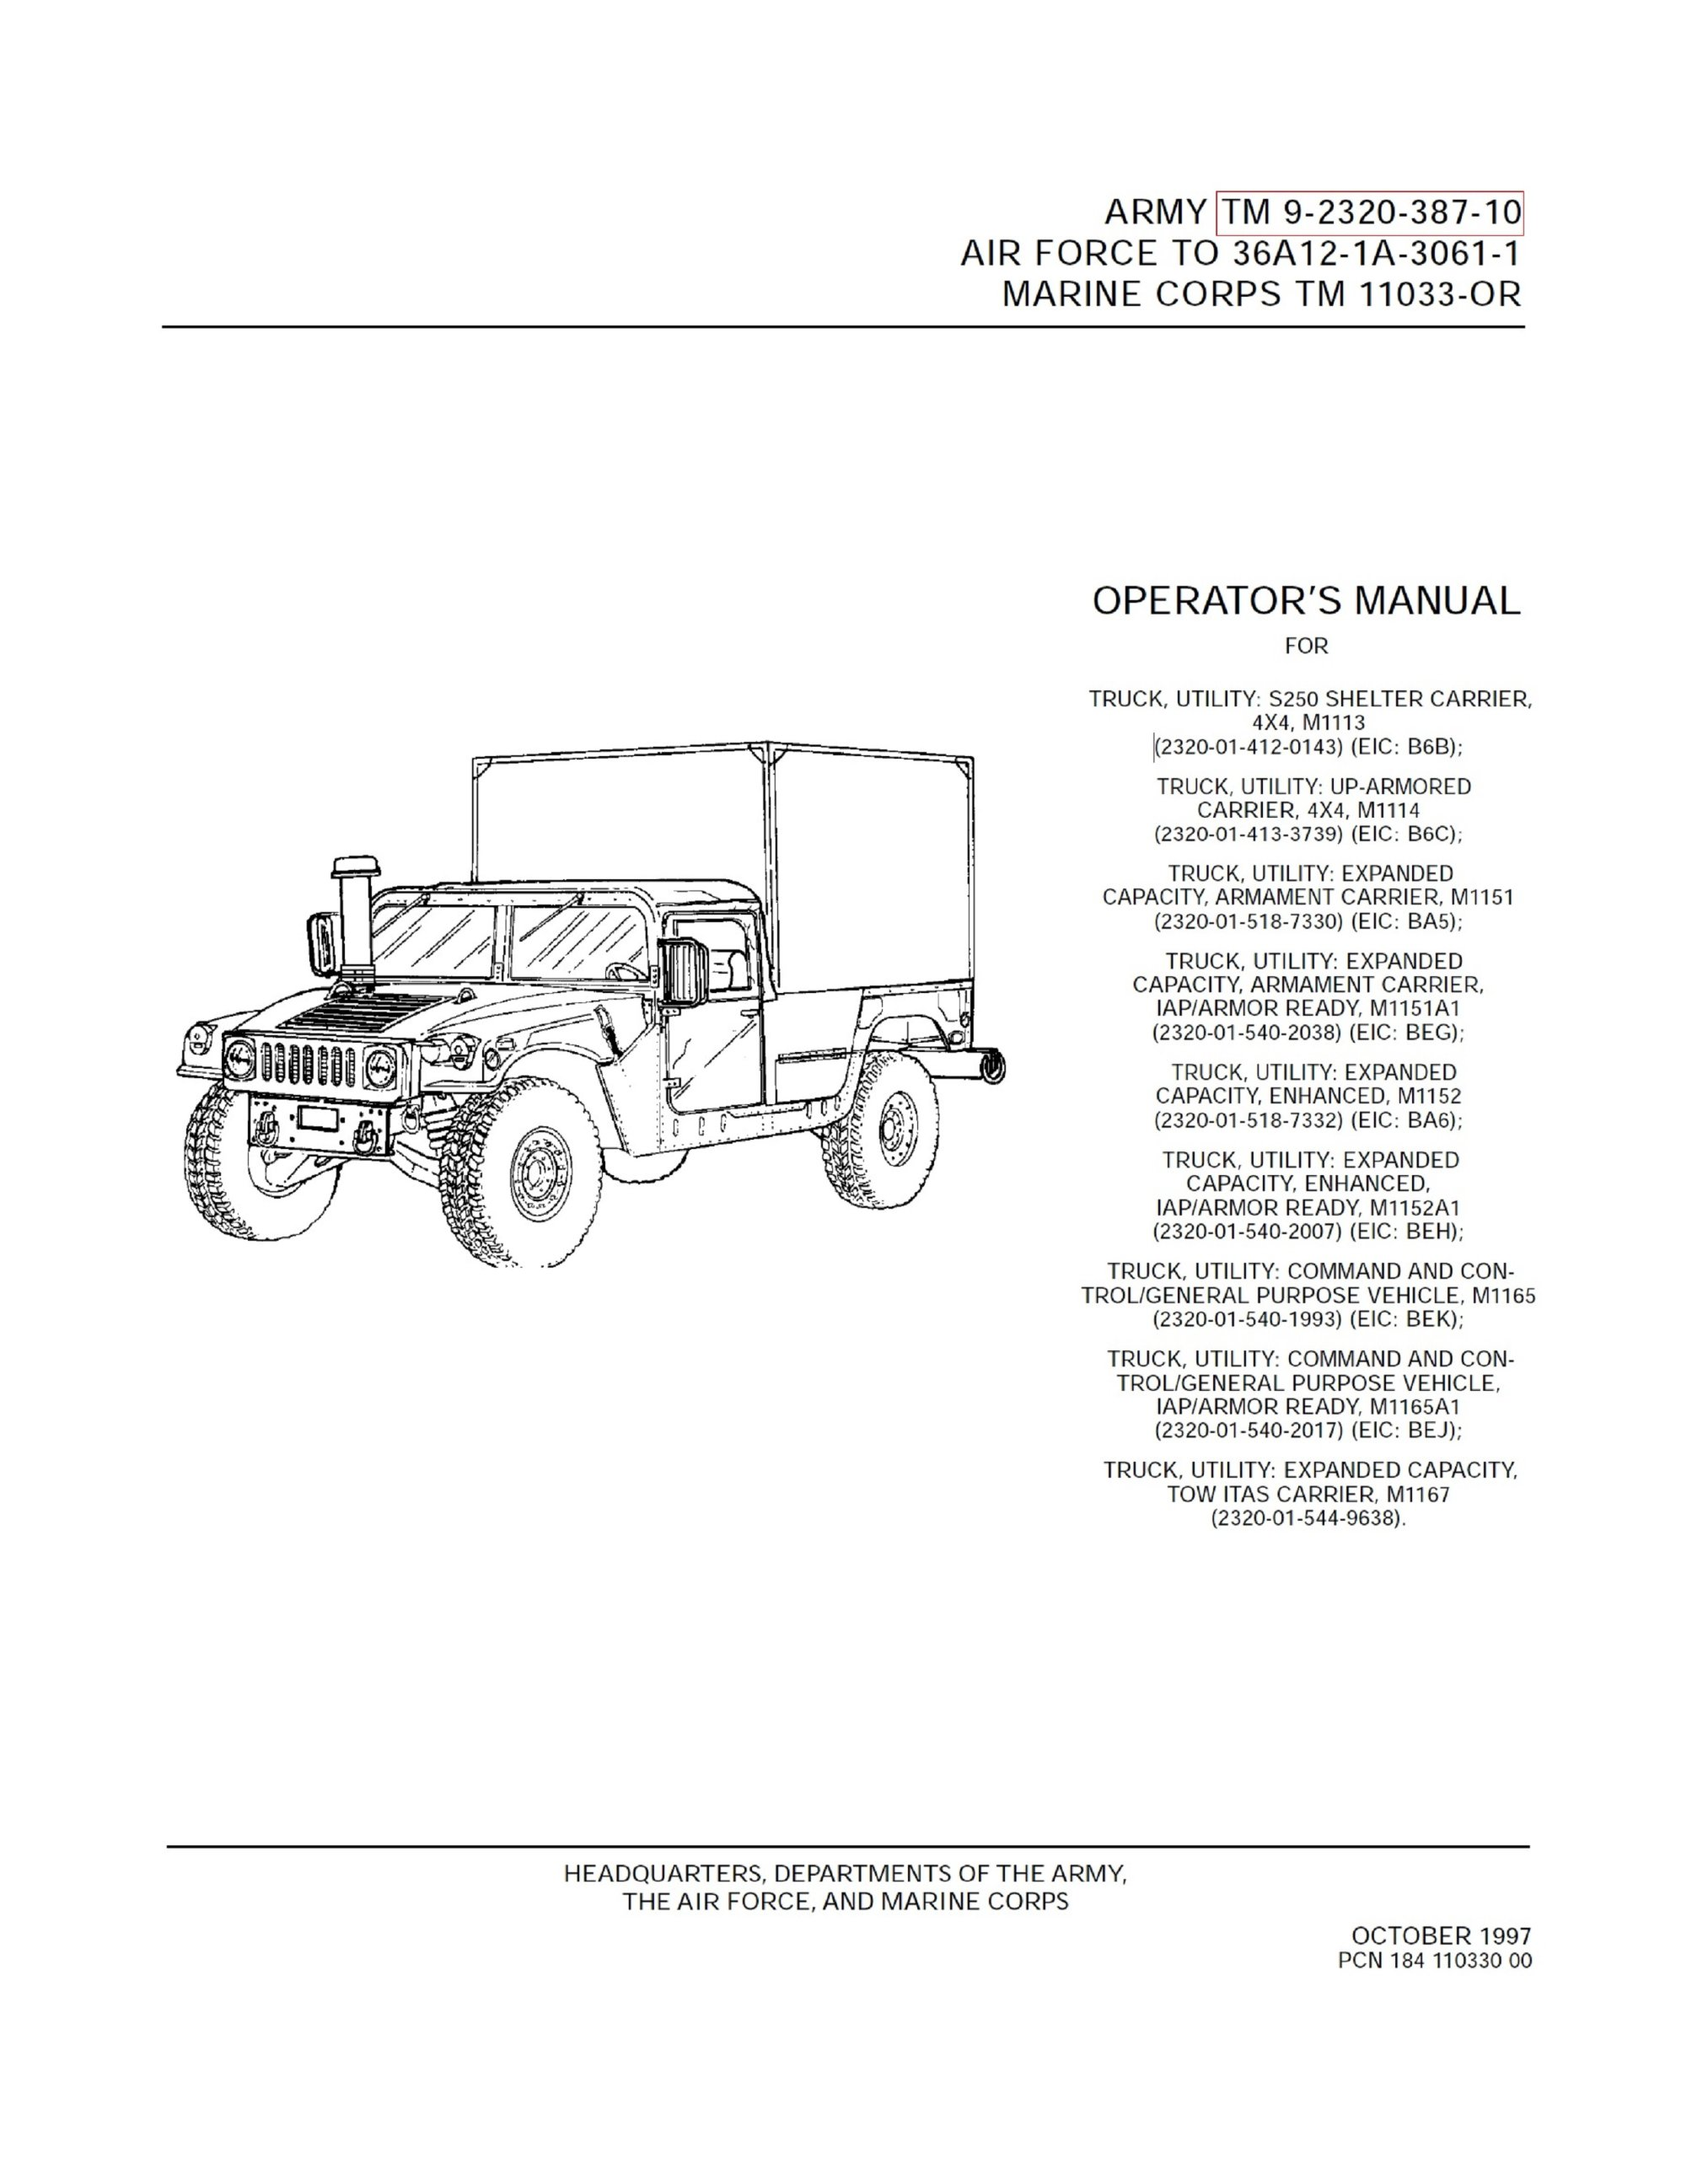 TM 9 2320 387 10 TRUCK UTILITY Operators Manual 4X4 SHELTER CARRIER M1113 And Utilty Trucks Armament Carriers M1151 M1152 M1165 Loose Leaf Edition